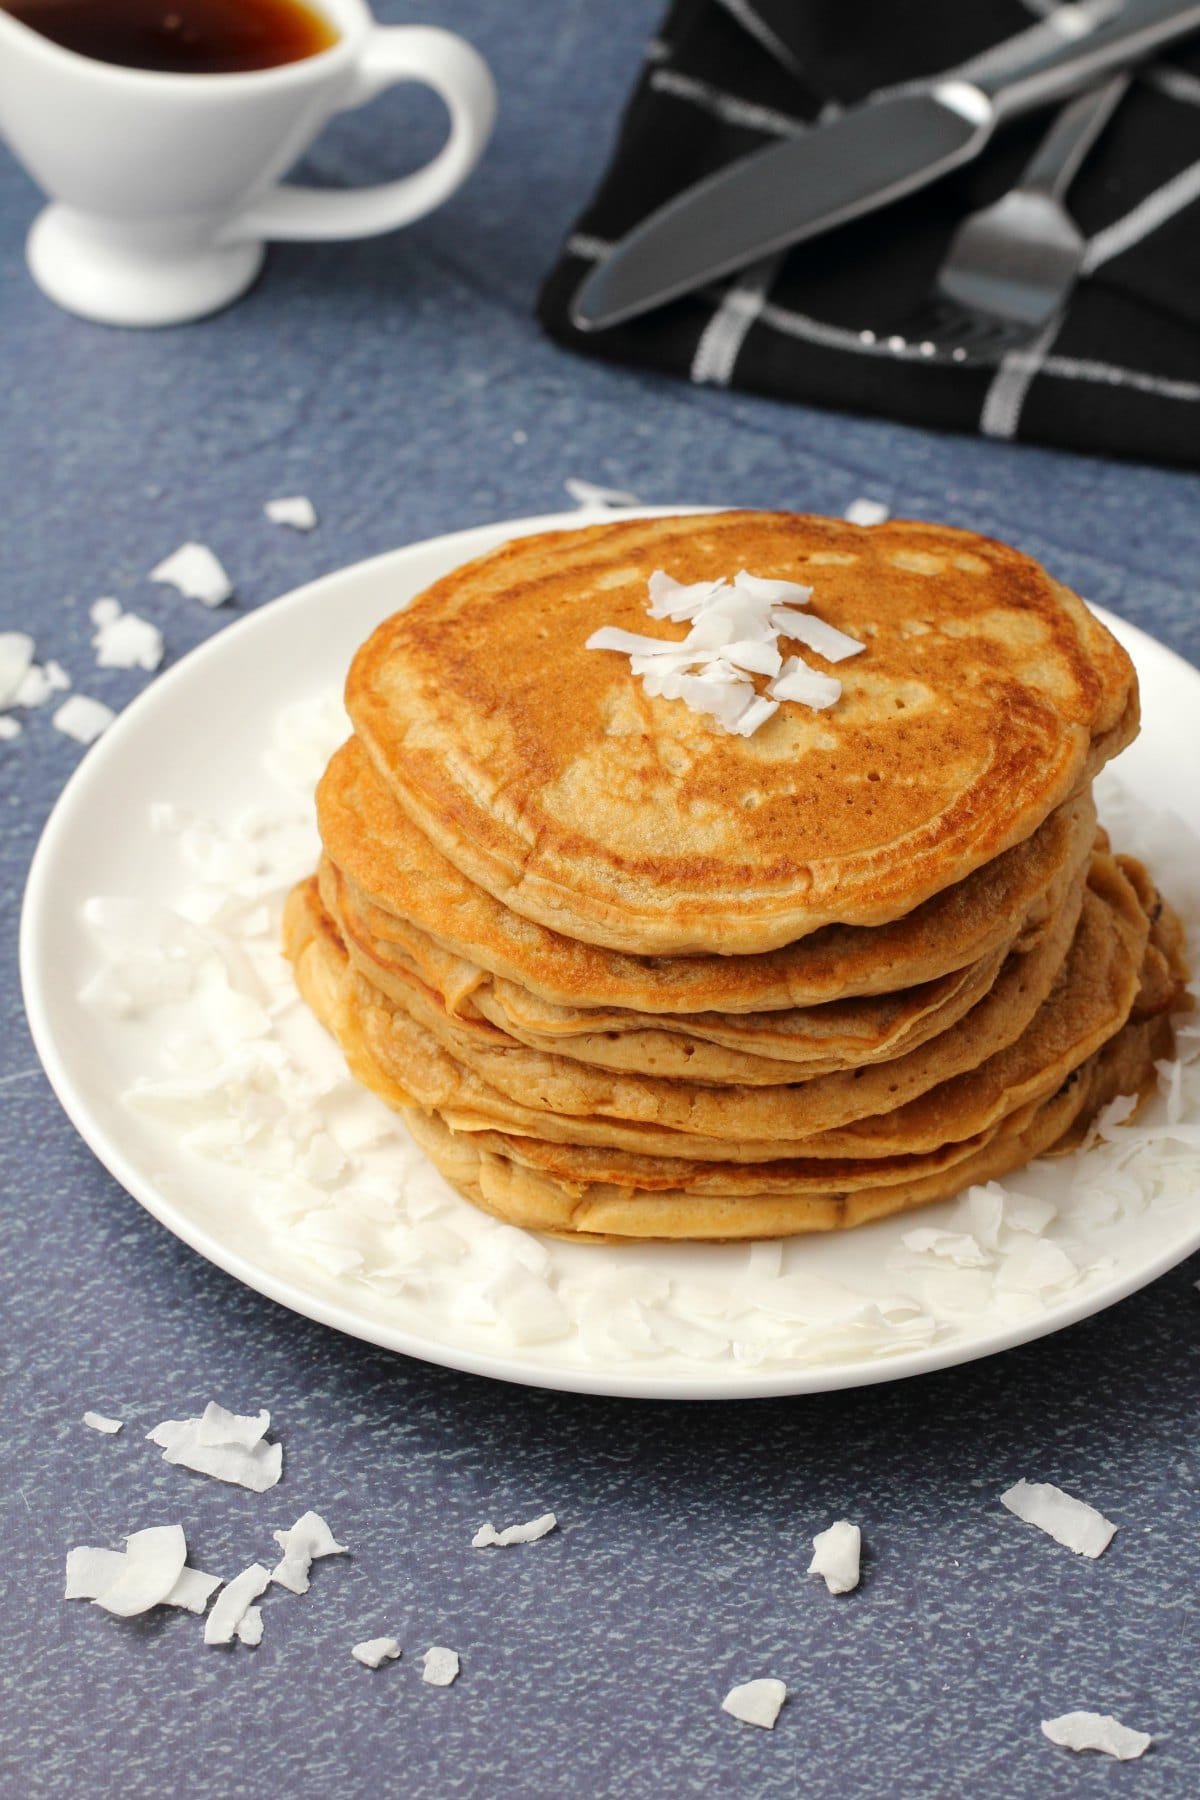 Vegan coconut pancakes topped with coconut flakes and stacked up on a white plate.